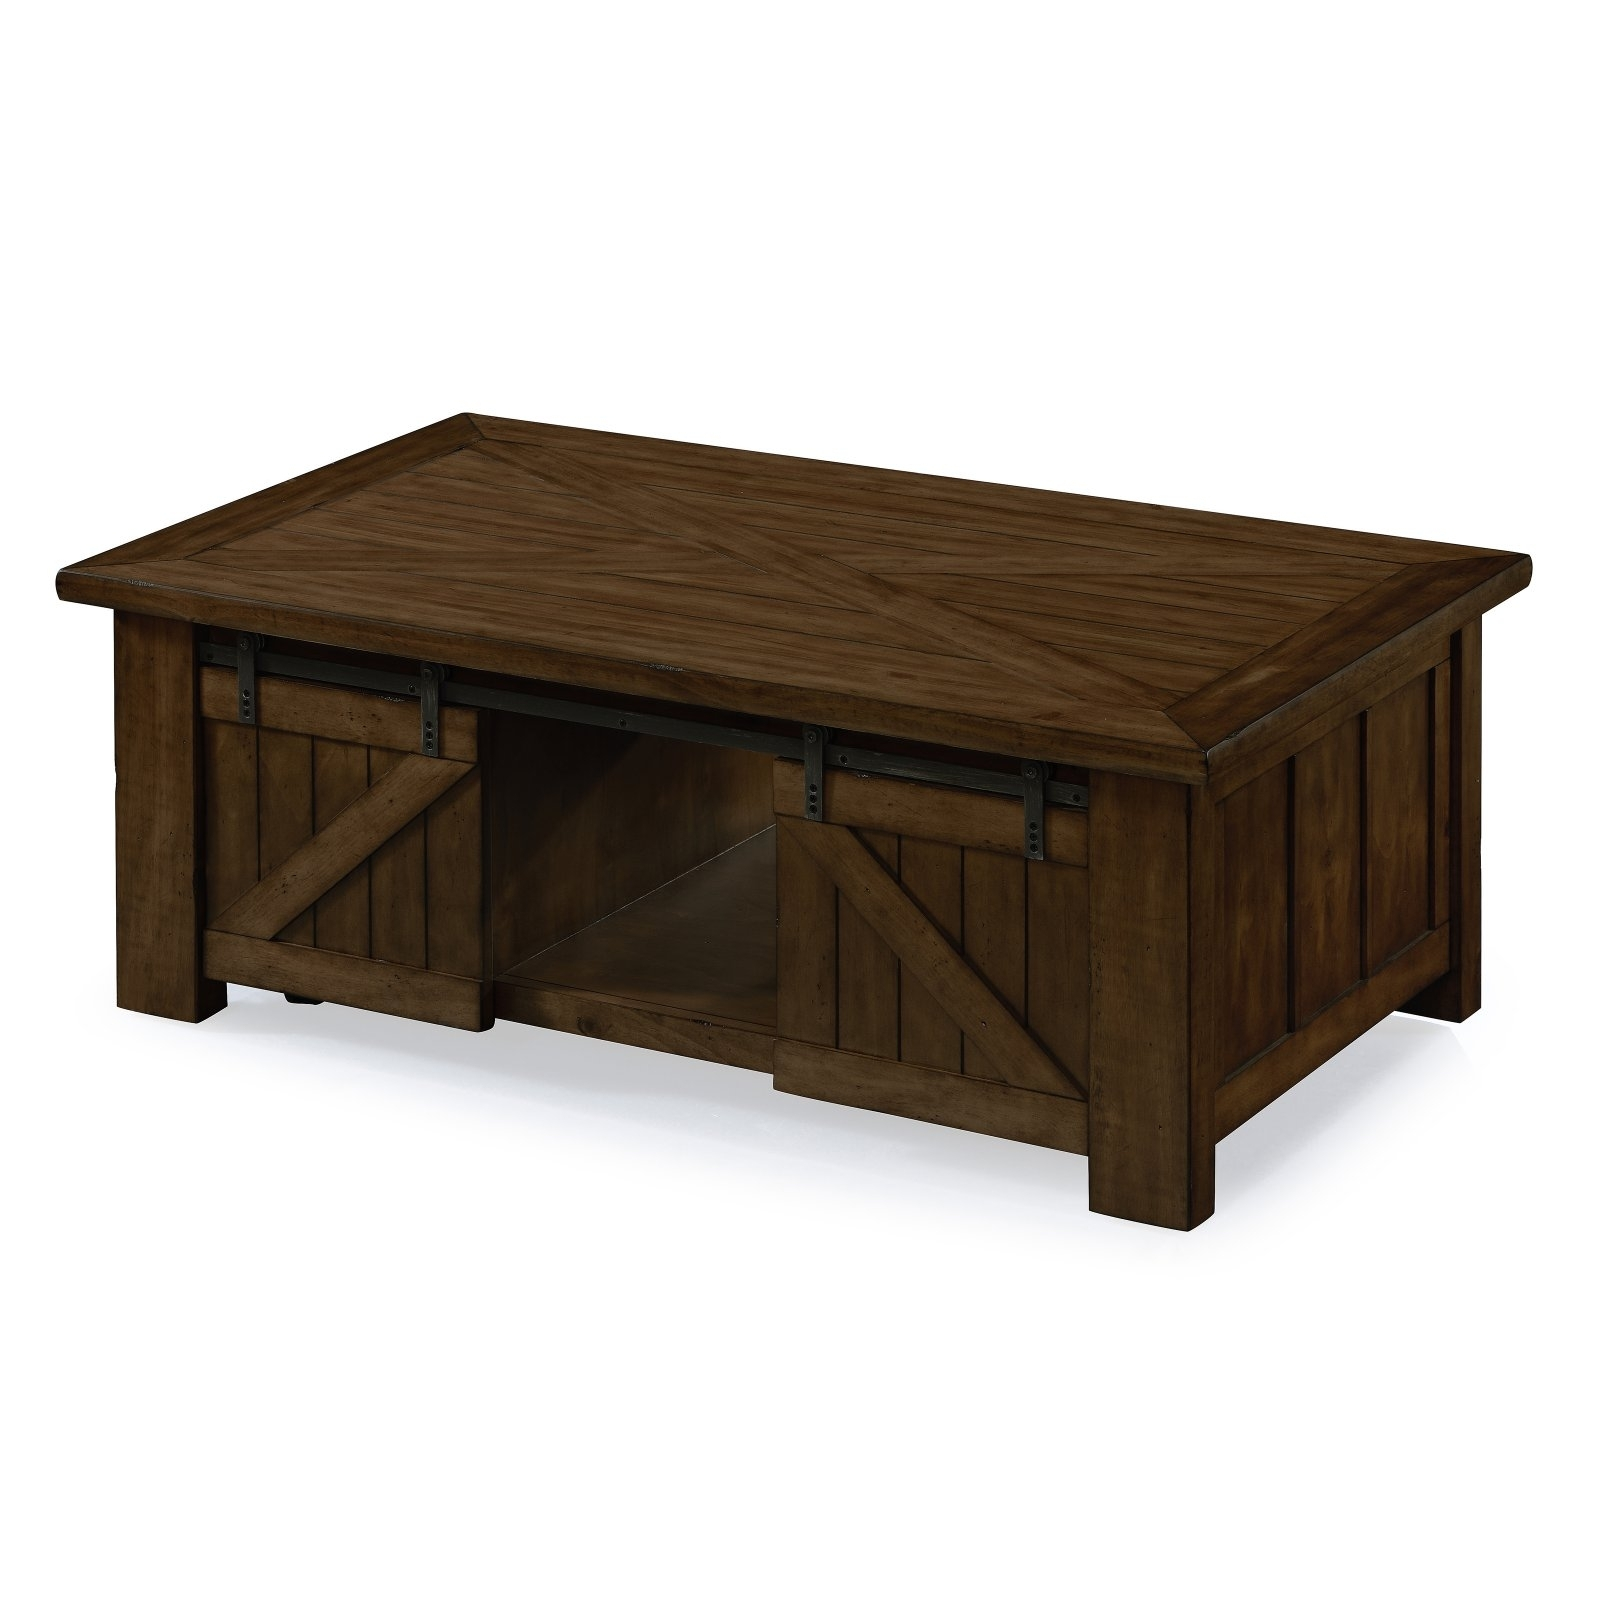 Magnussen Fraser Rectangular Cocktail Table With Casters – Walmart Pertaining To 2018 Ontario Cocktail Tables With Casters (View 7 of 20)